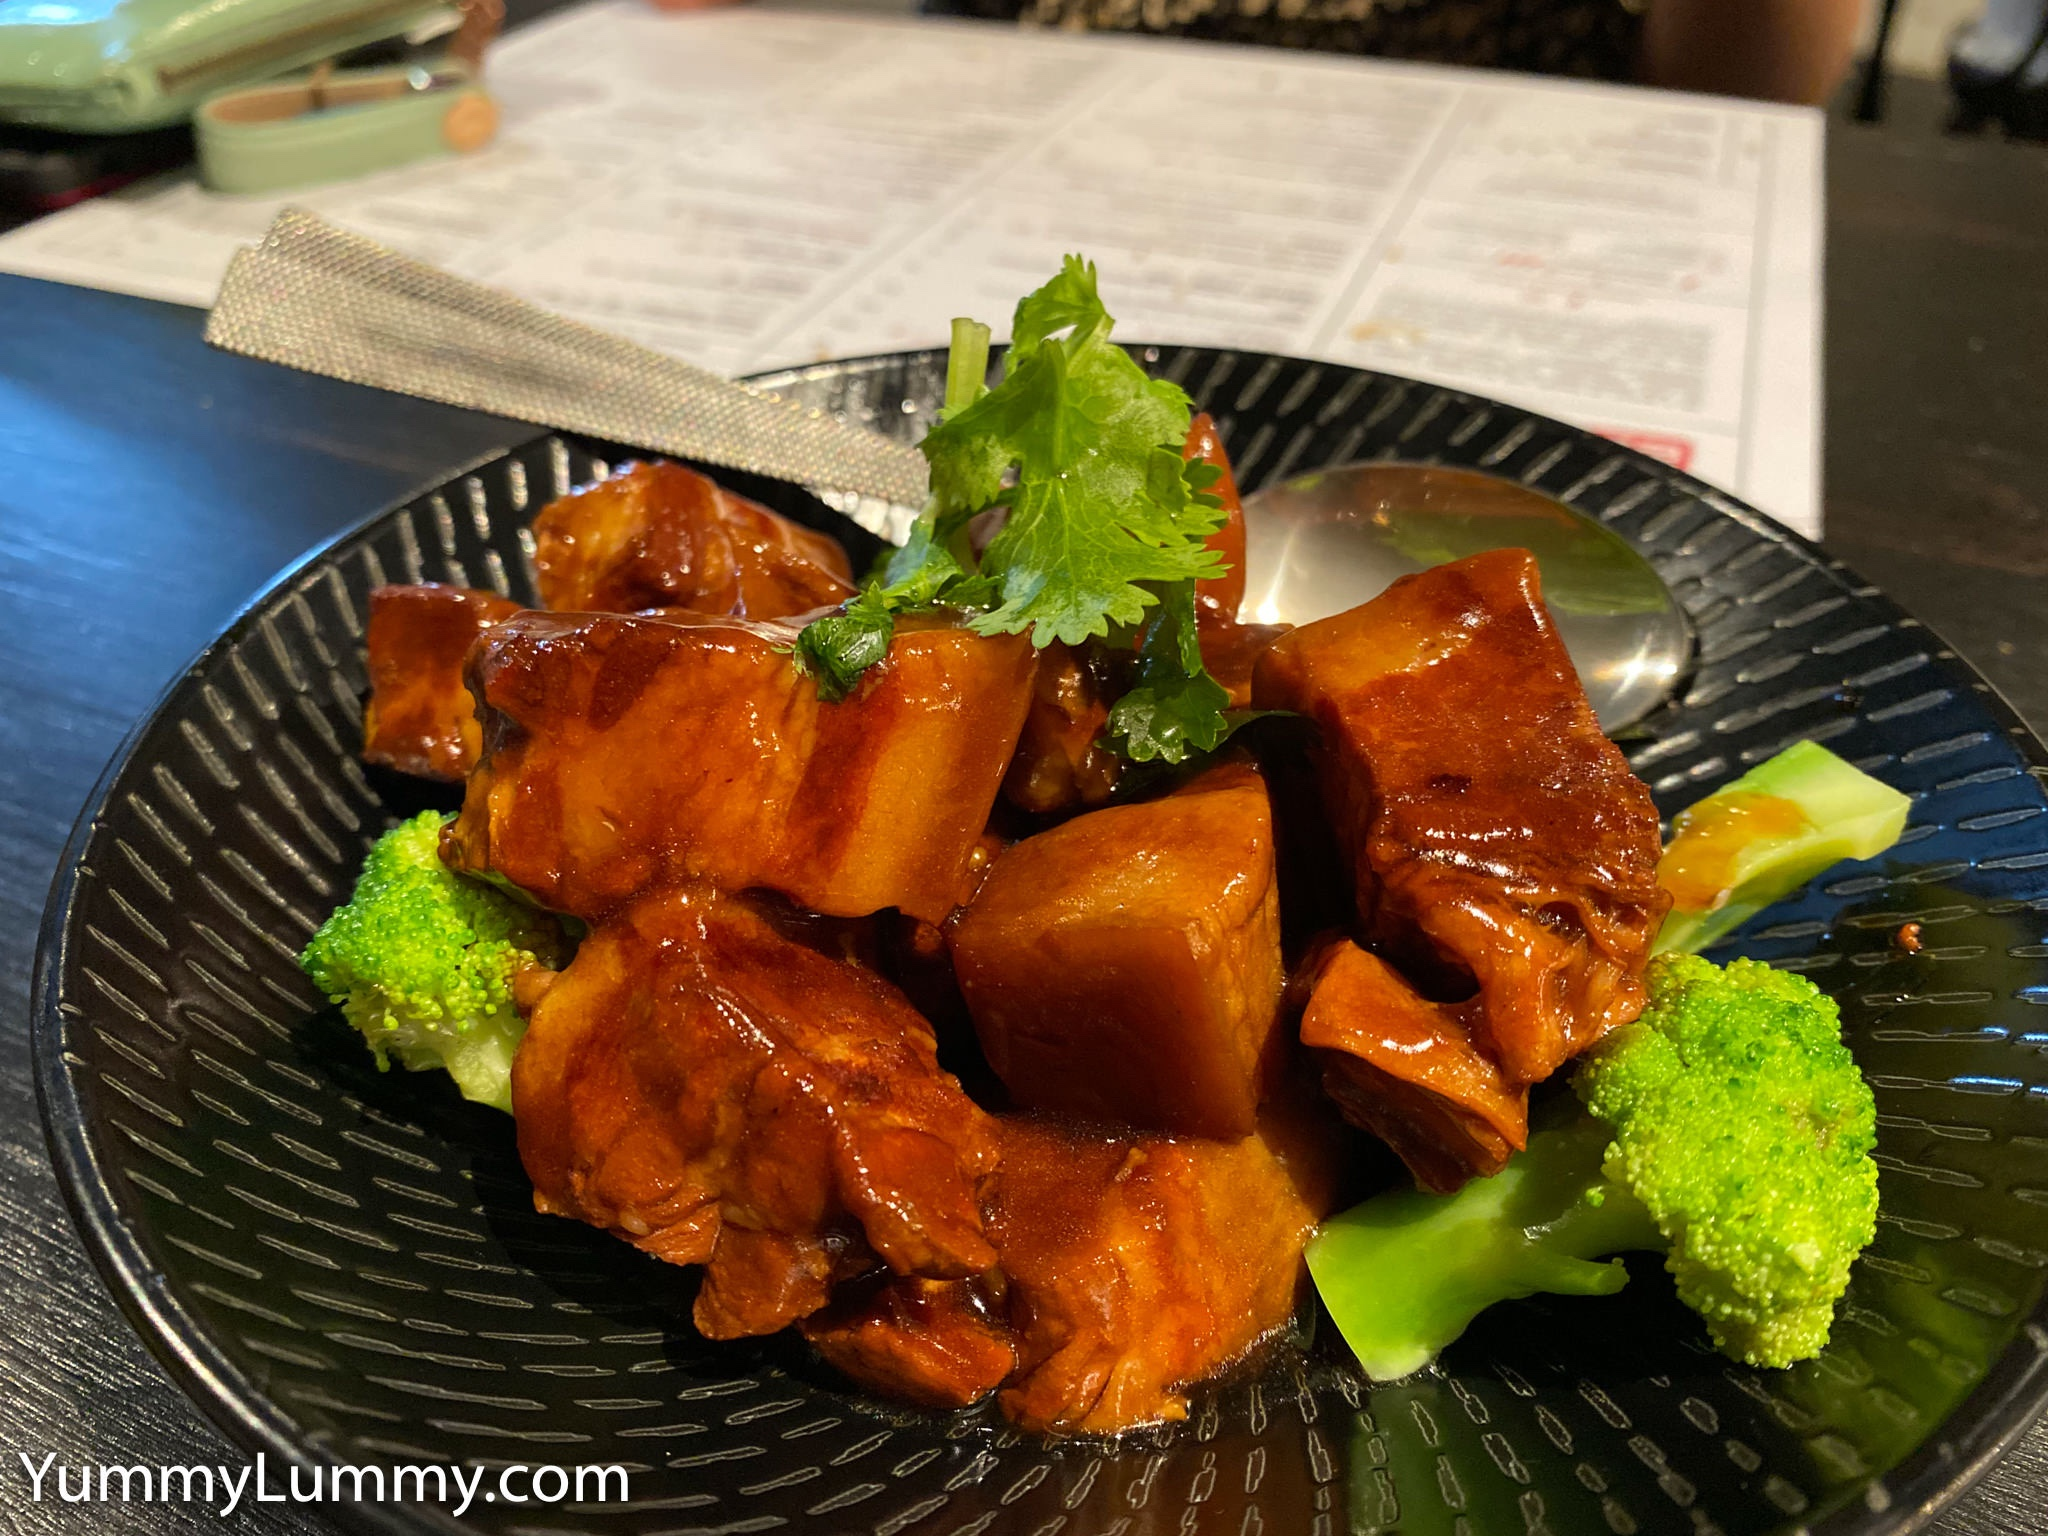 Slow cooked pork belly at Sichuan Papa. Gary Lum.